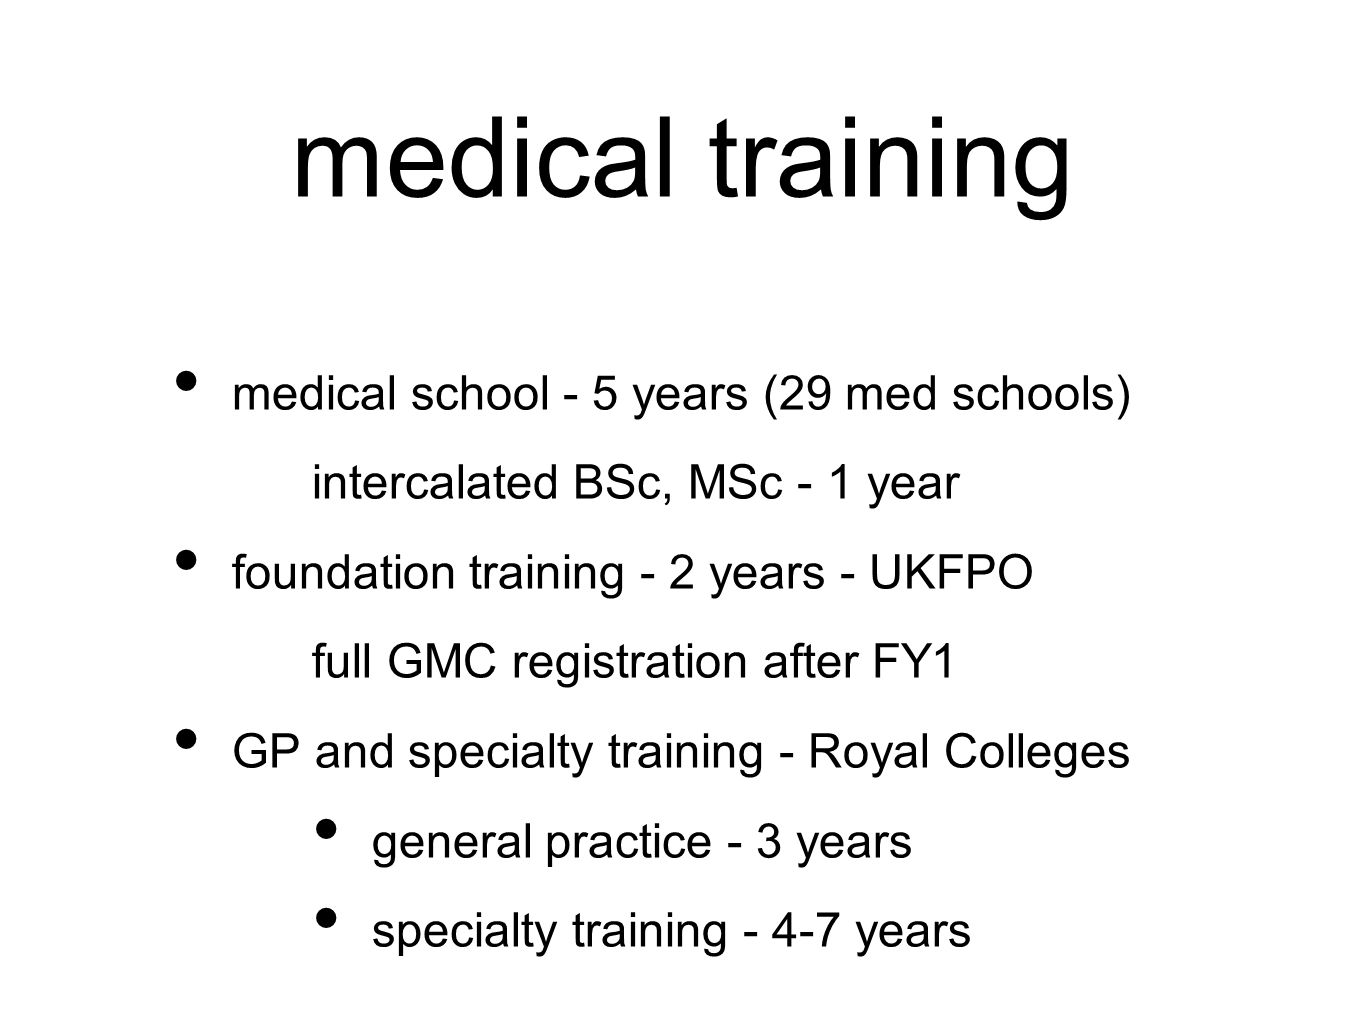 medical training medical school - 5 years (29 med schools) intercalated BSc, MSc - 1 year foundation training - 2 years - UKFPO full GMC registration after FY1 GP and specialty training - Royal Colleges general practice - 3 years specialty training - 4-7 years